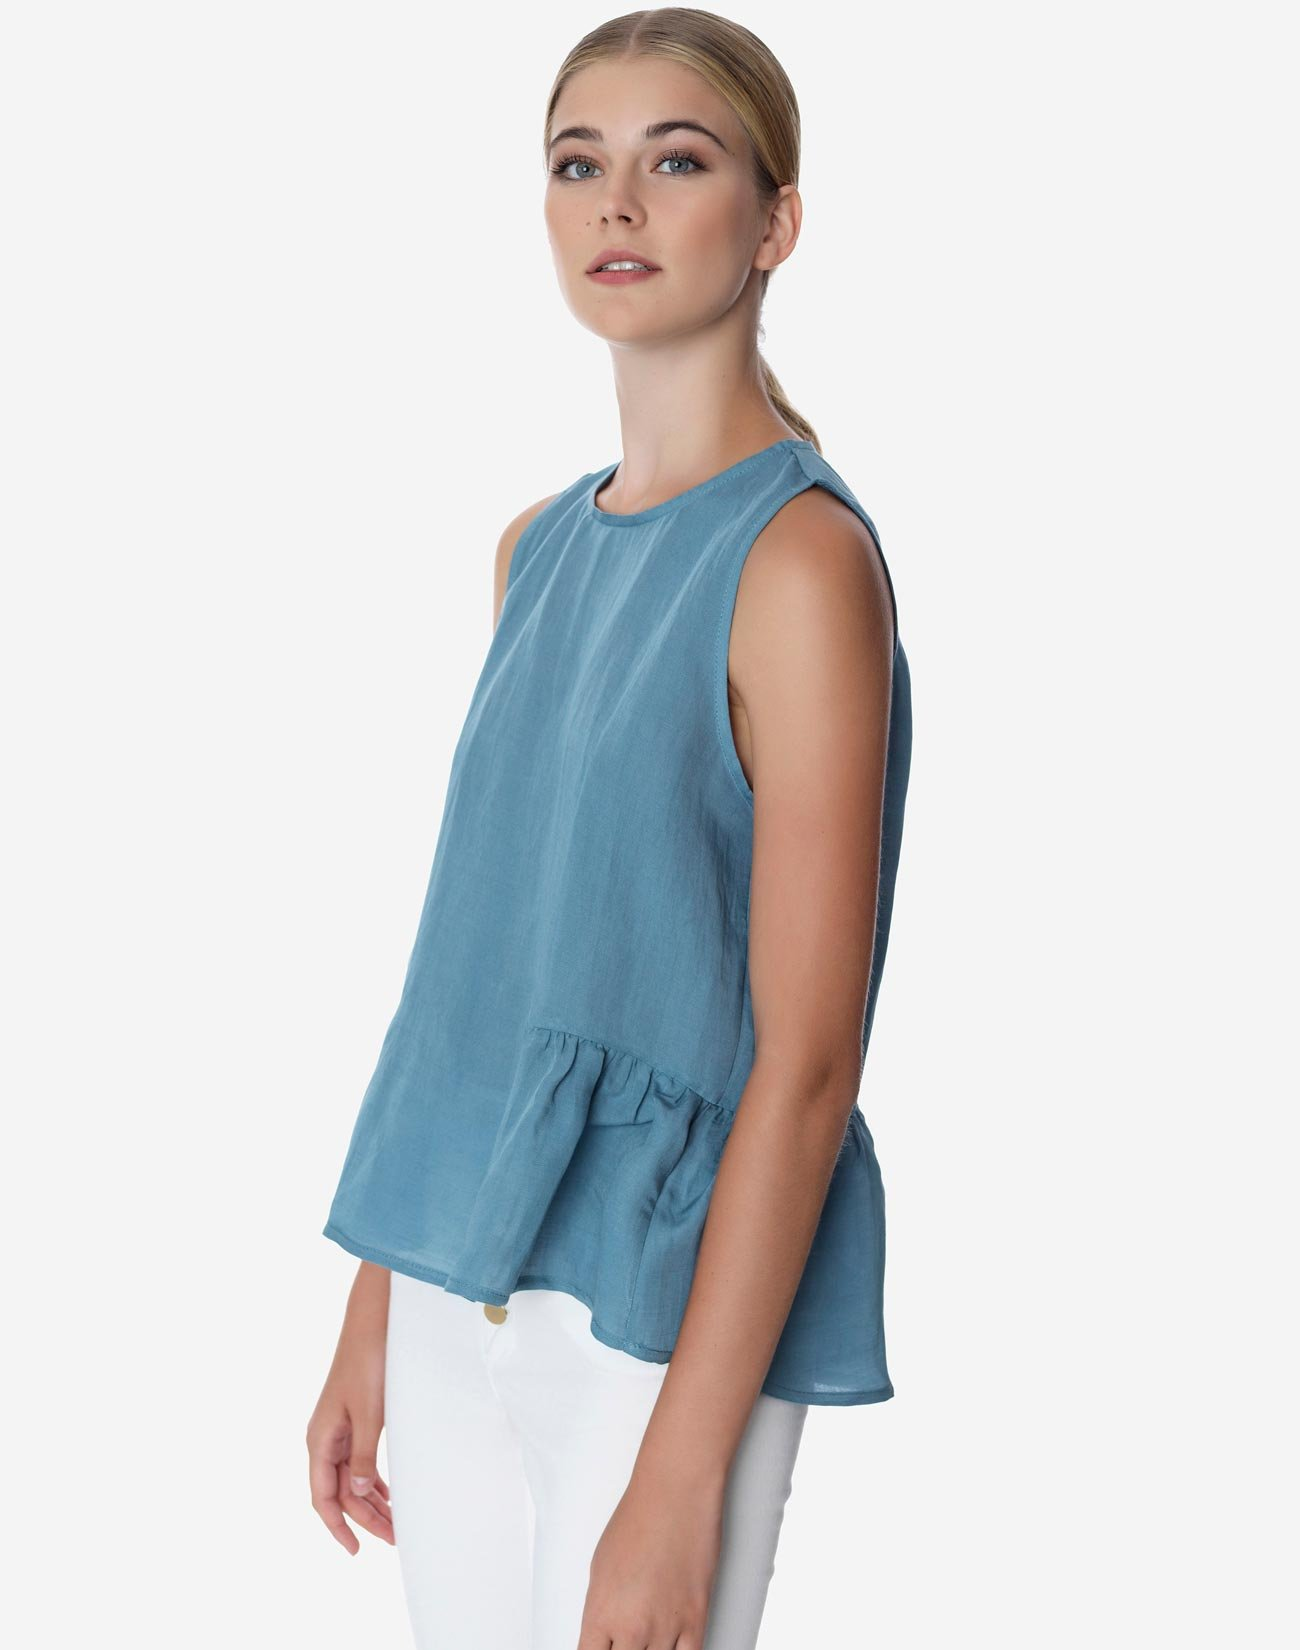 Sleveless top with